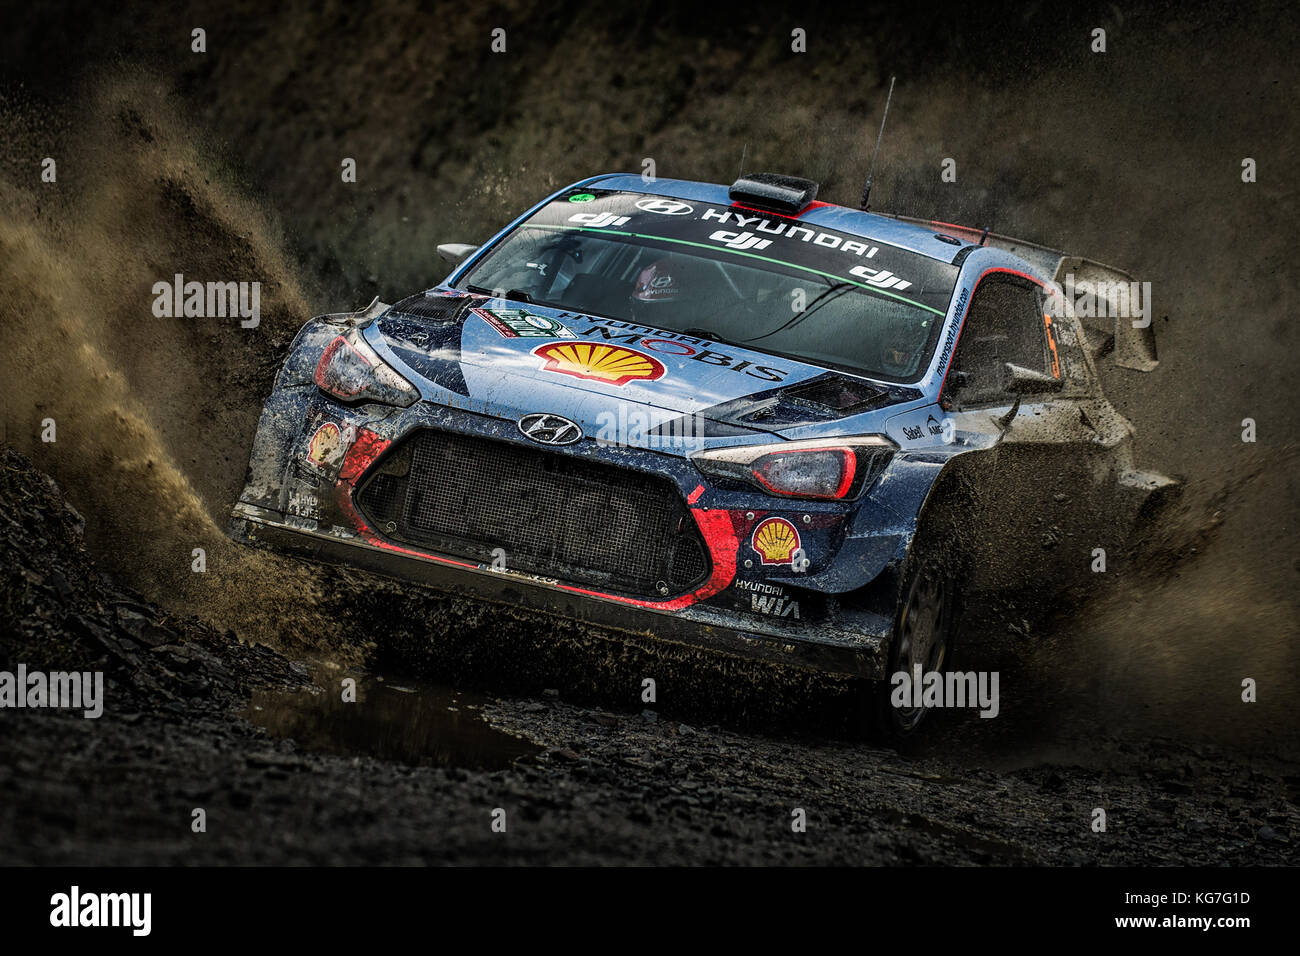 Thierry Neuville Rallyes in der WRC World Rally Championship Tag versichern Wales Rally GB 2017 Stockbild